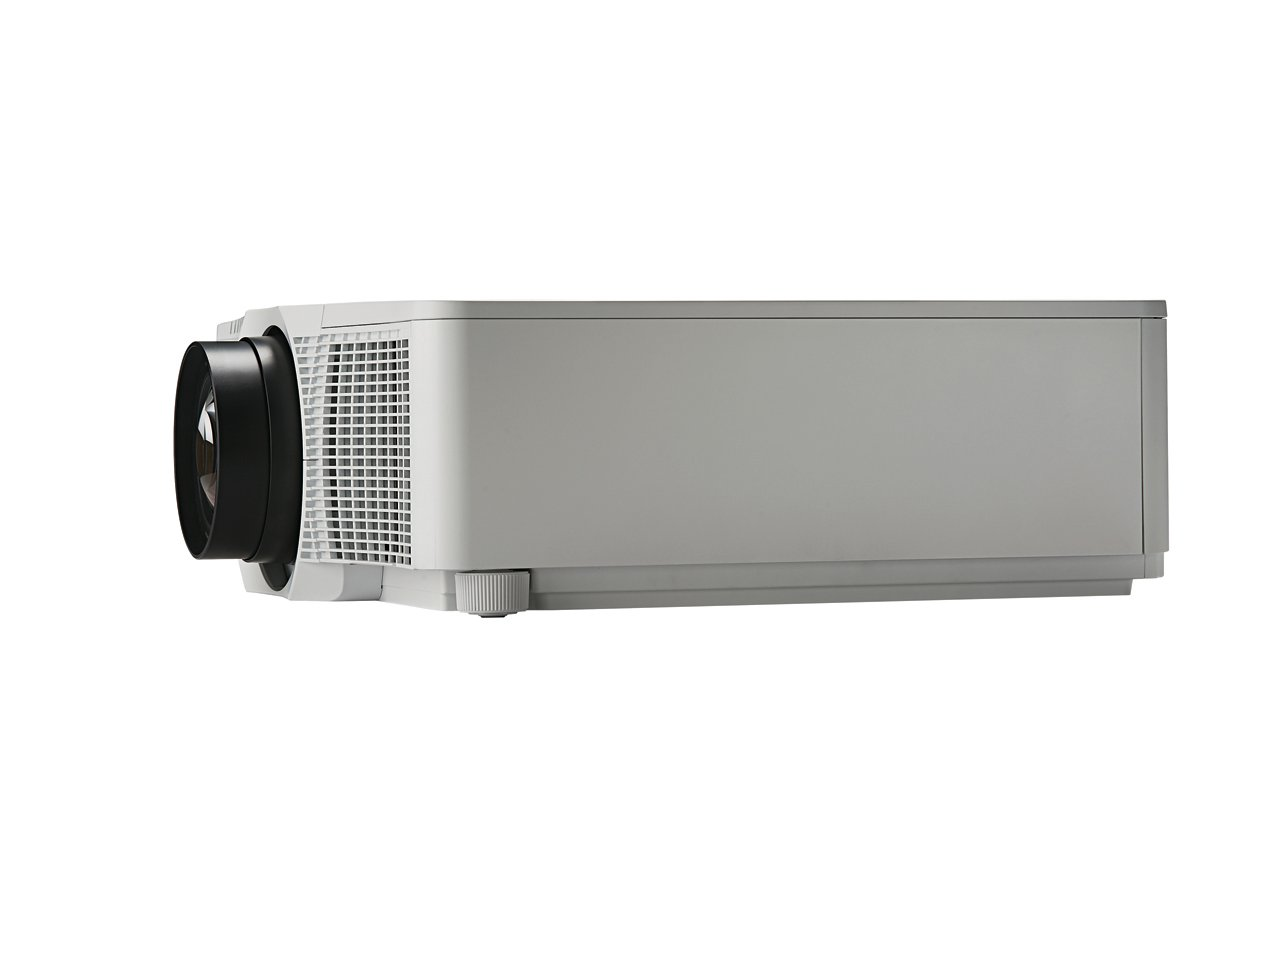 Christie DWX851-Q 1DLP projectors | 121-031105-01 (white) | 121-031116-01 (black)